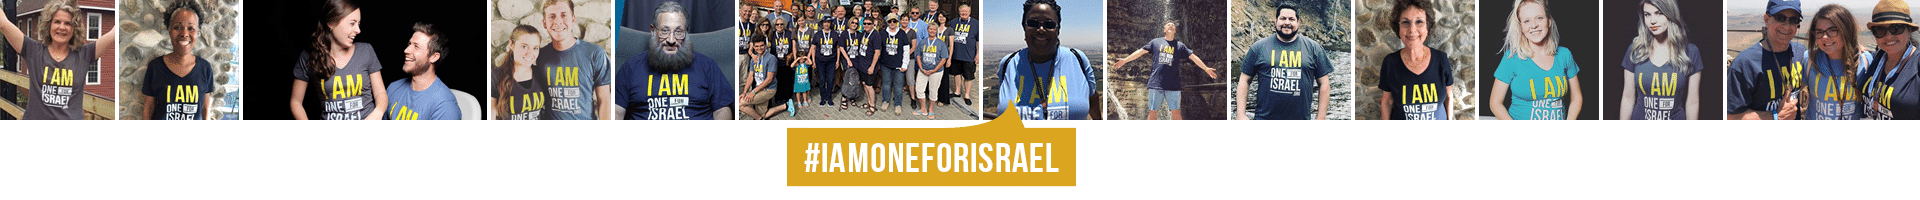 We are ONE for Israel!